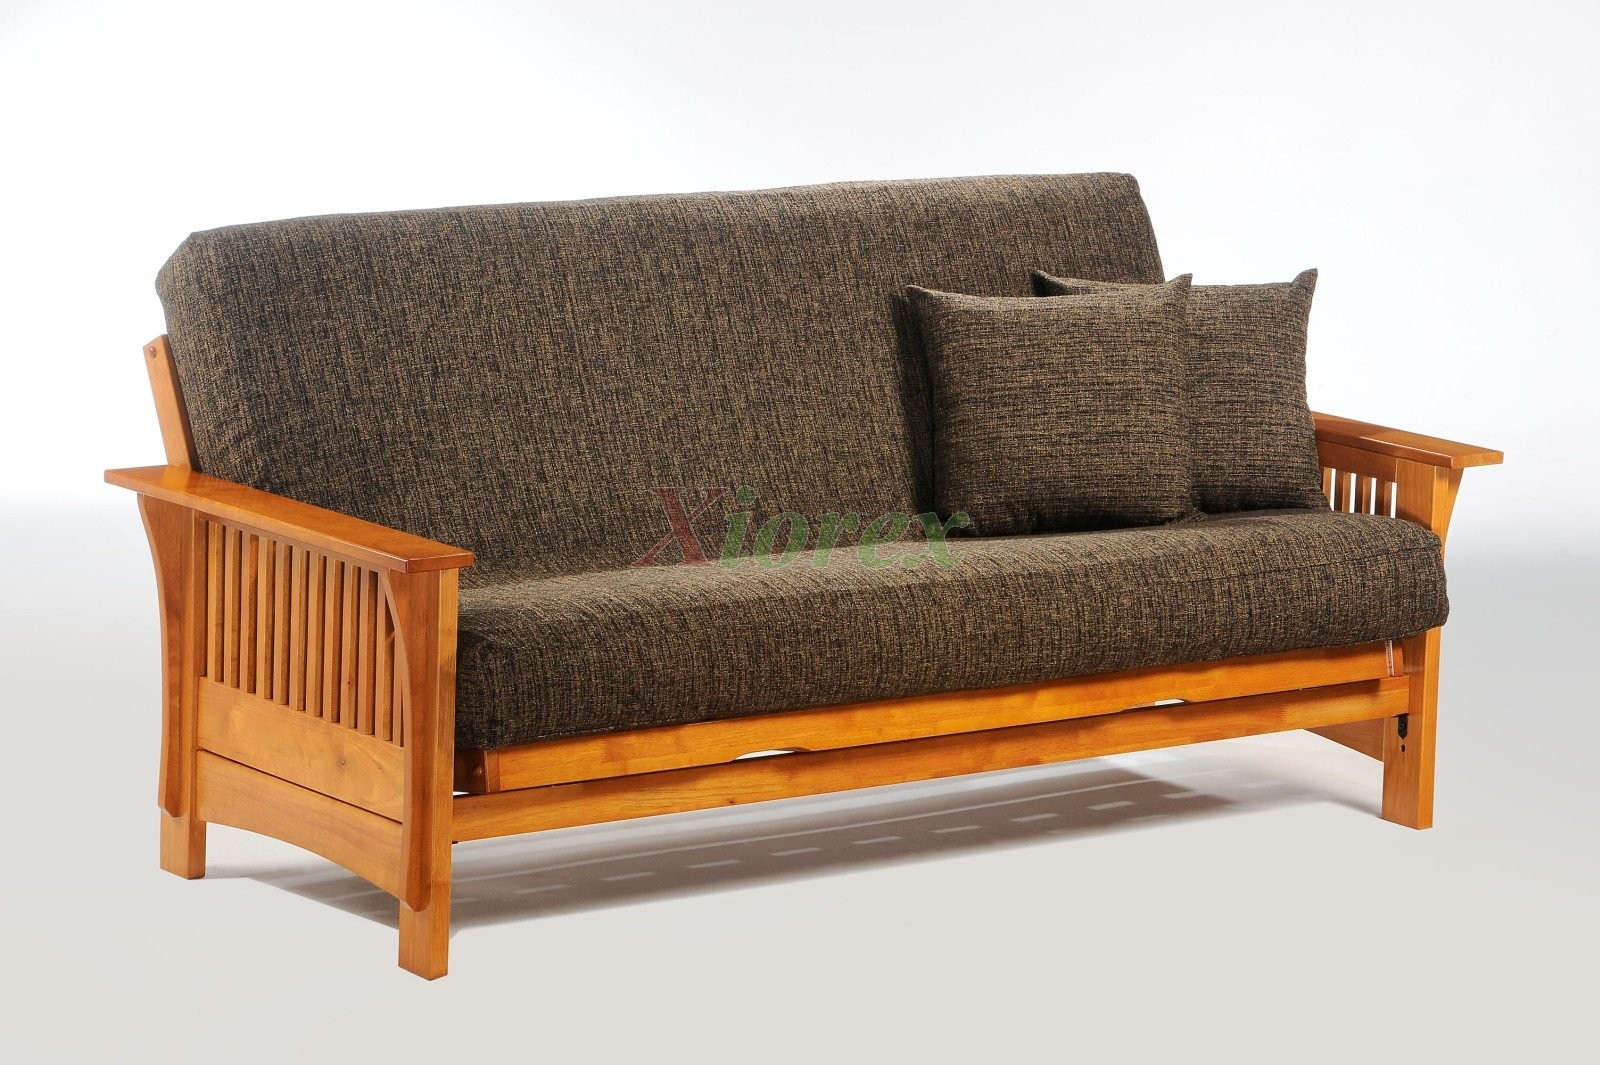 Night And Day Autumn Futon In Chocolate Honey Oak Natural